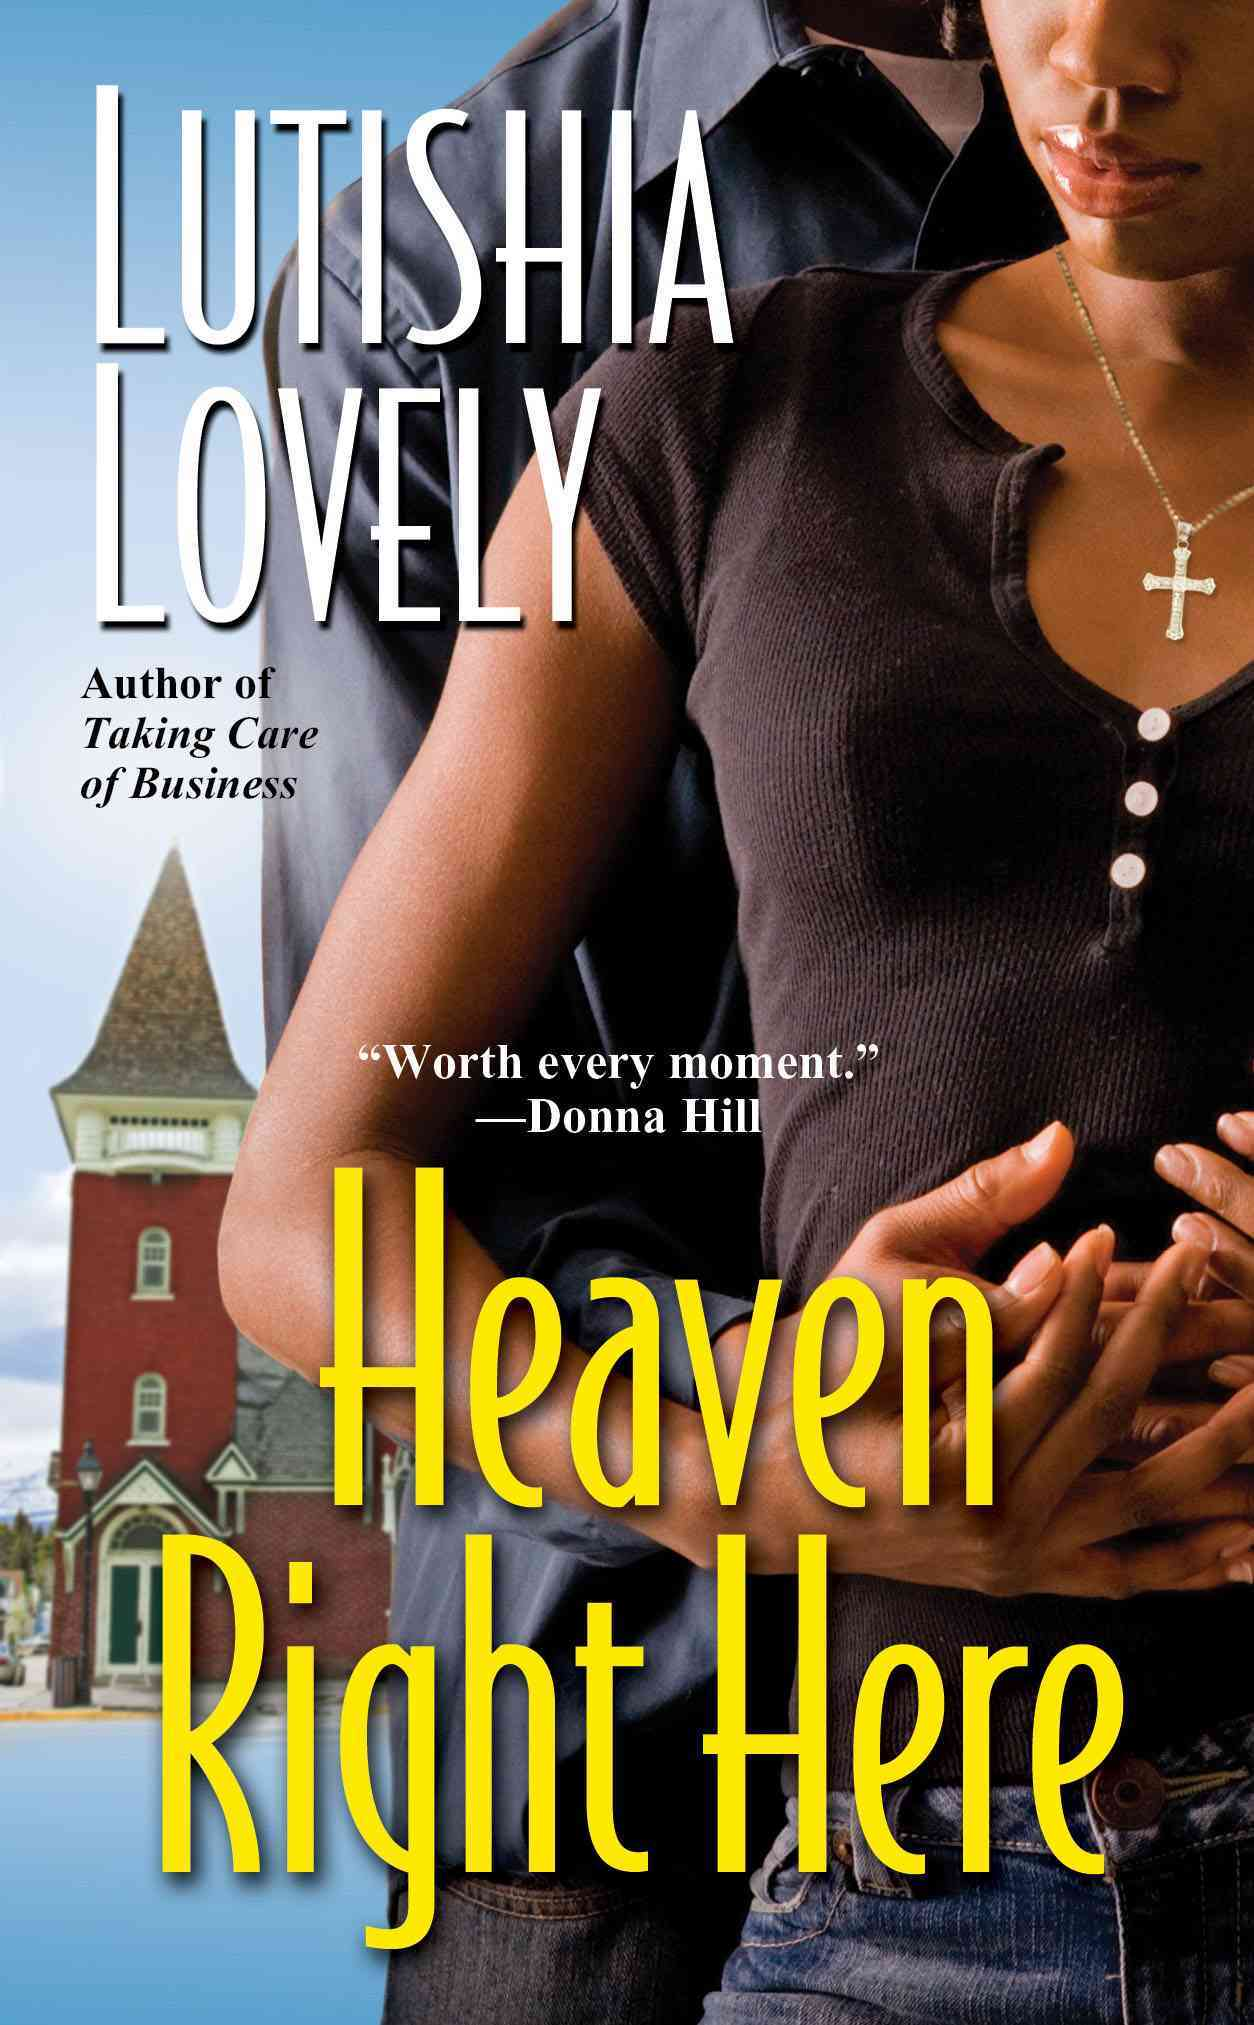 Heaven Right Here (Paperback)